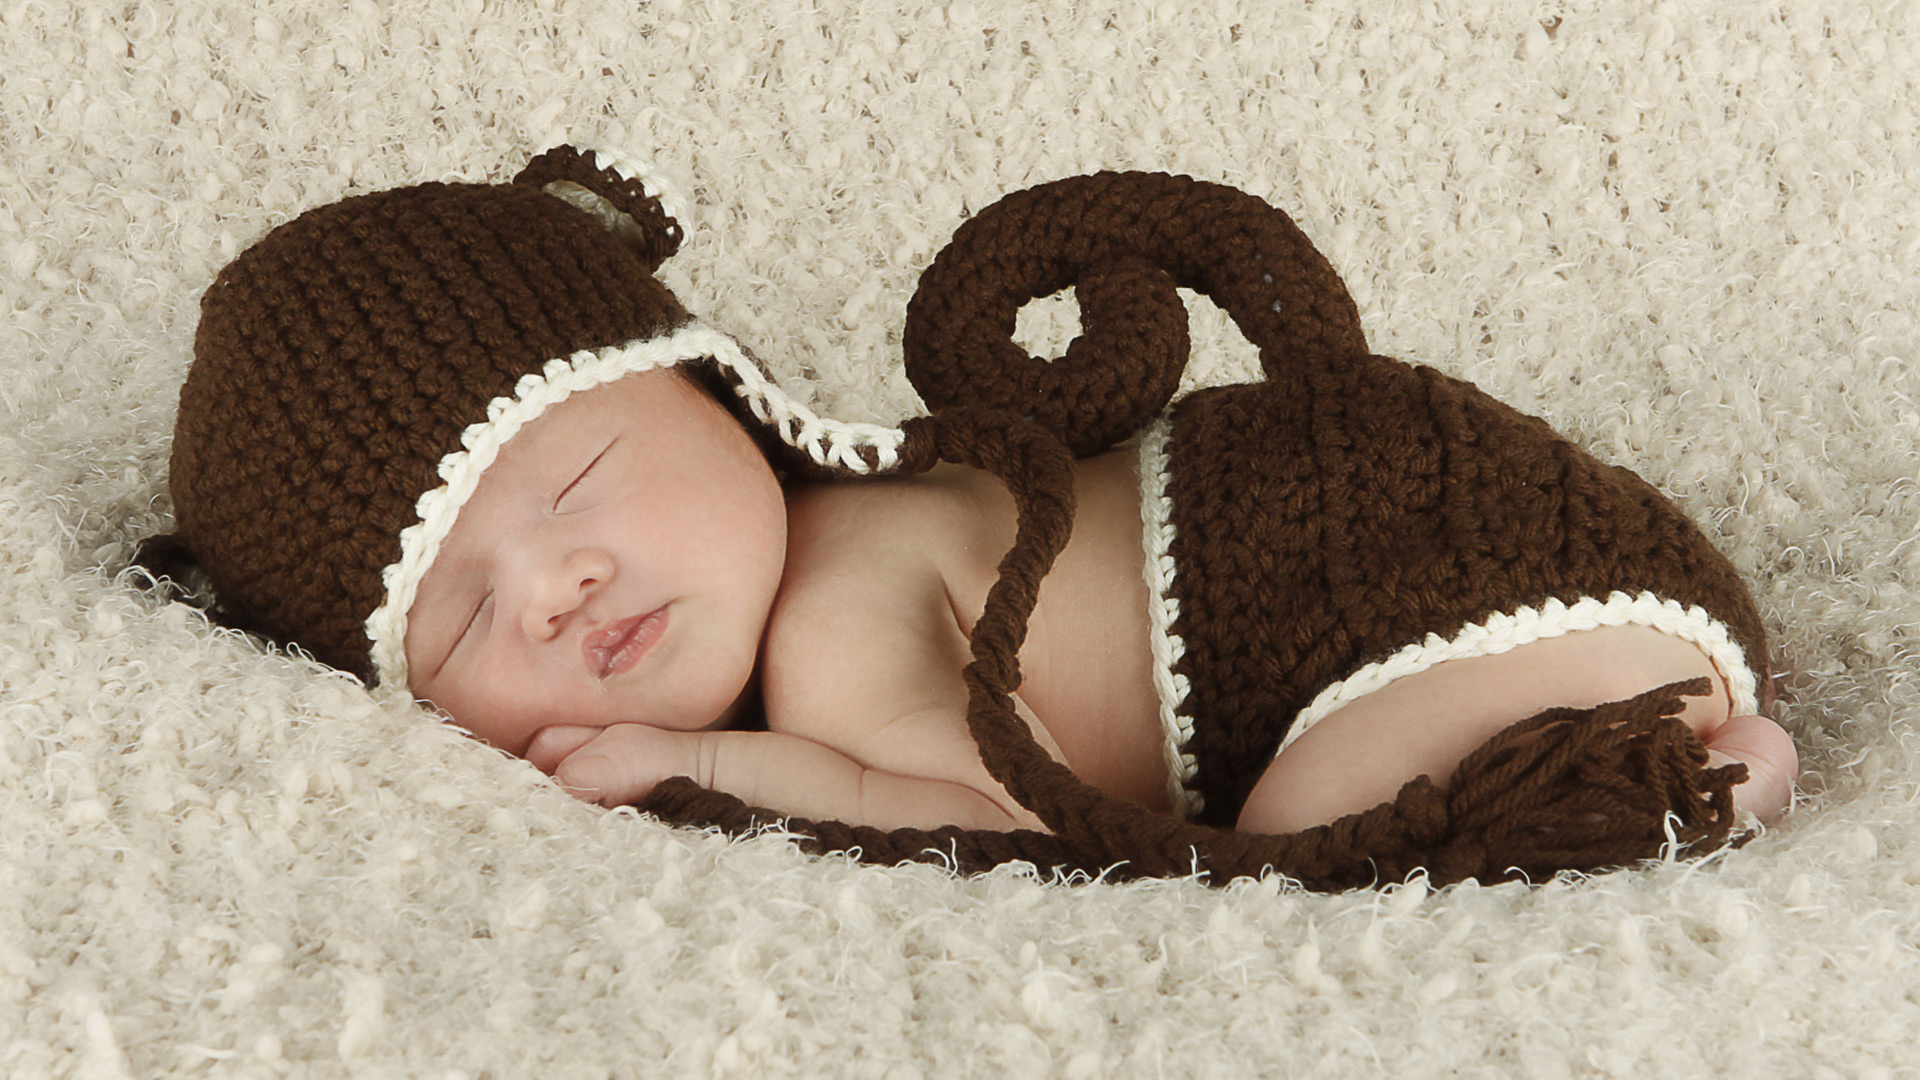 Newborn photo shoot | PregnancyAndBaby.com